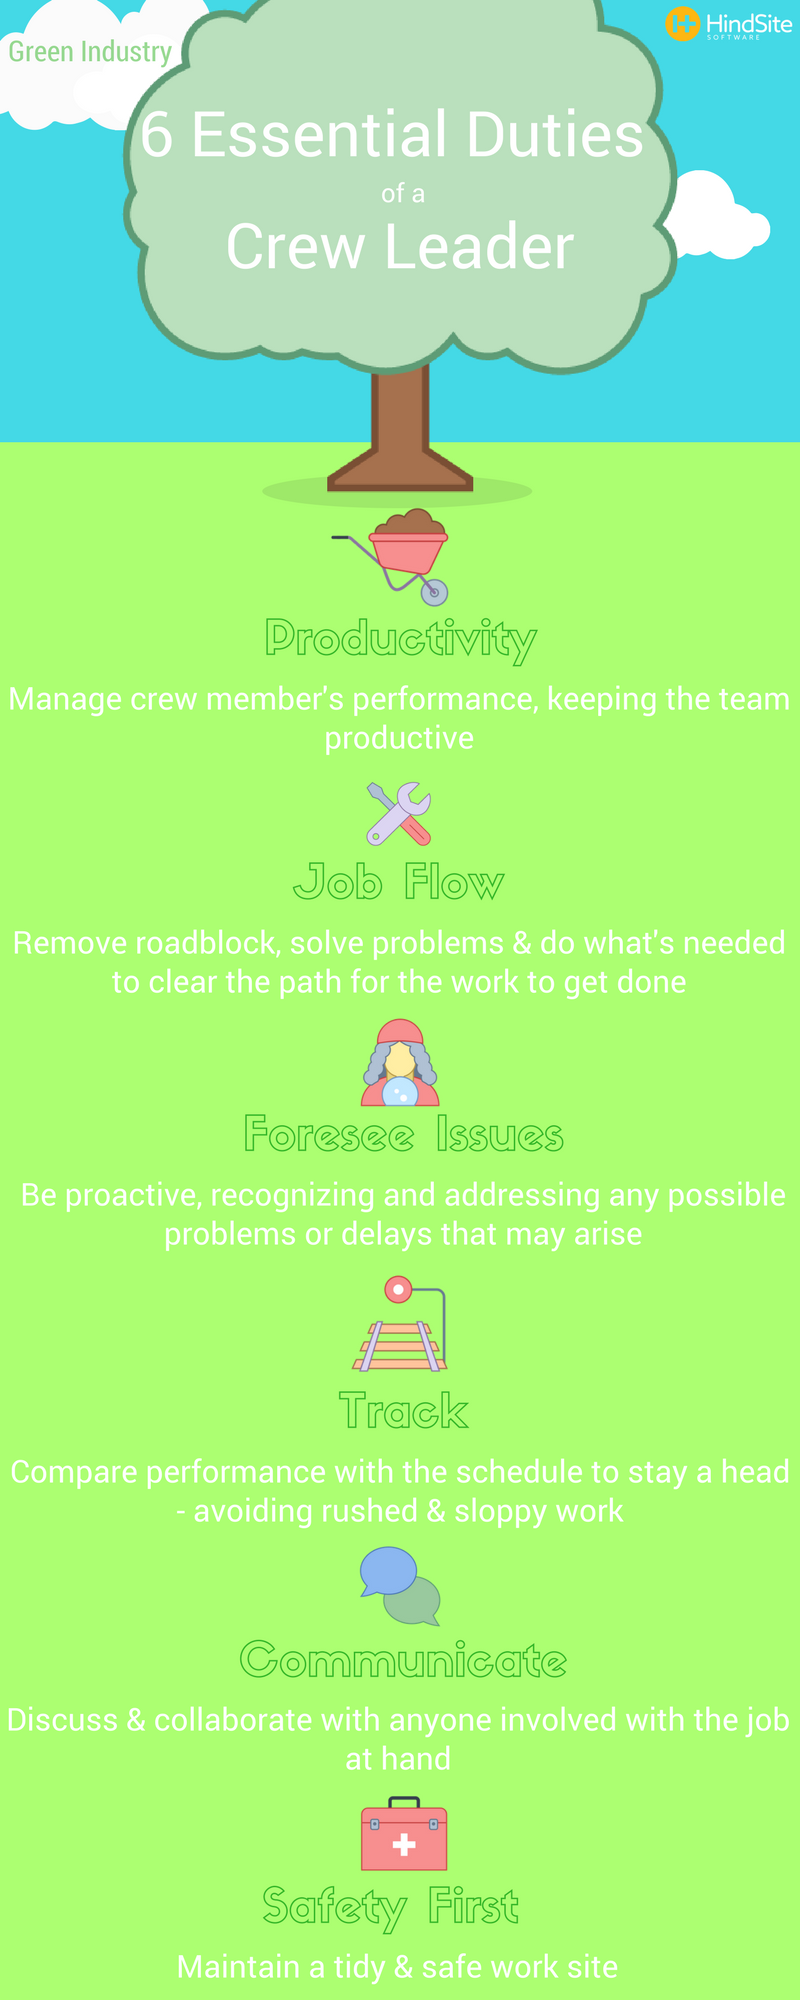 Field Service Industry- 6 Essential Duties of a Crew Leader.png